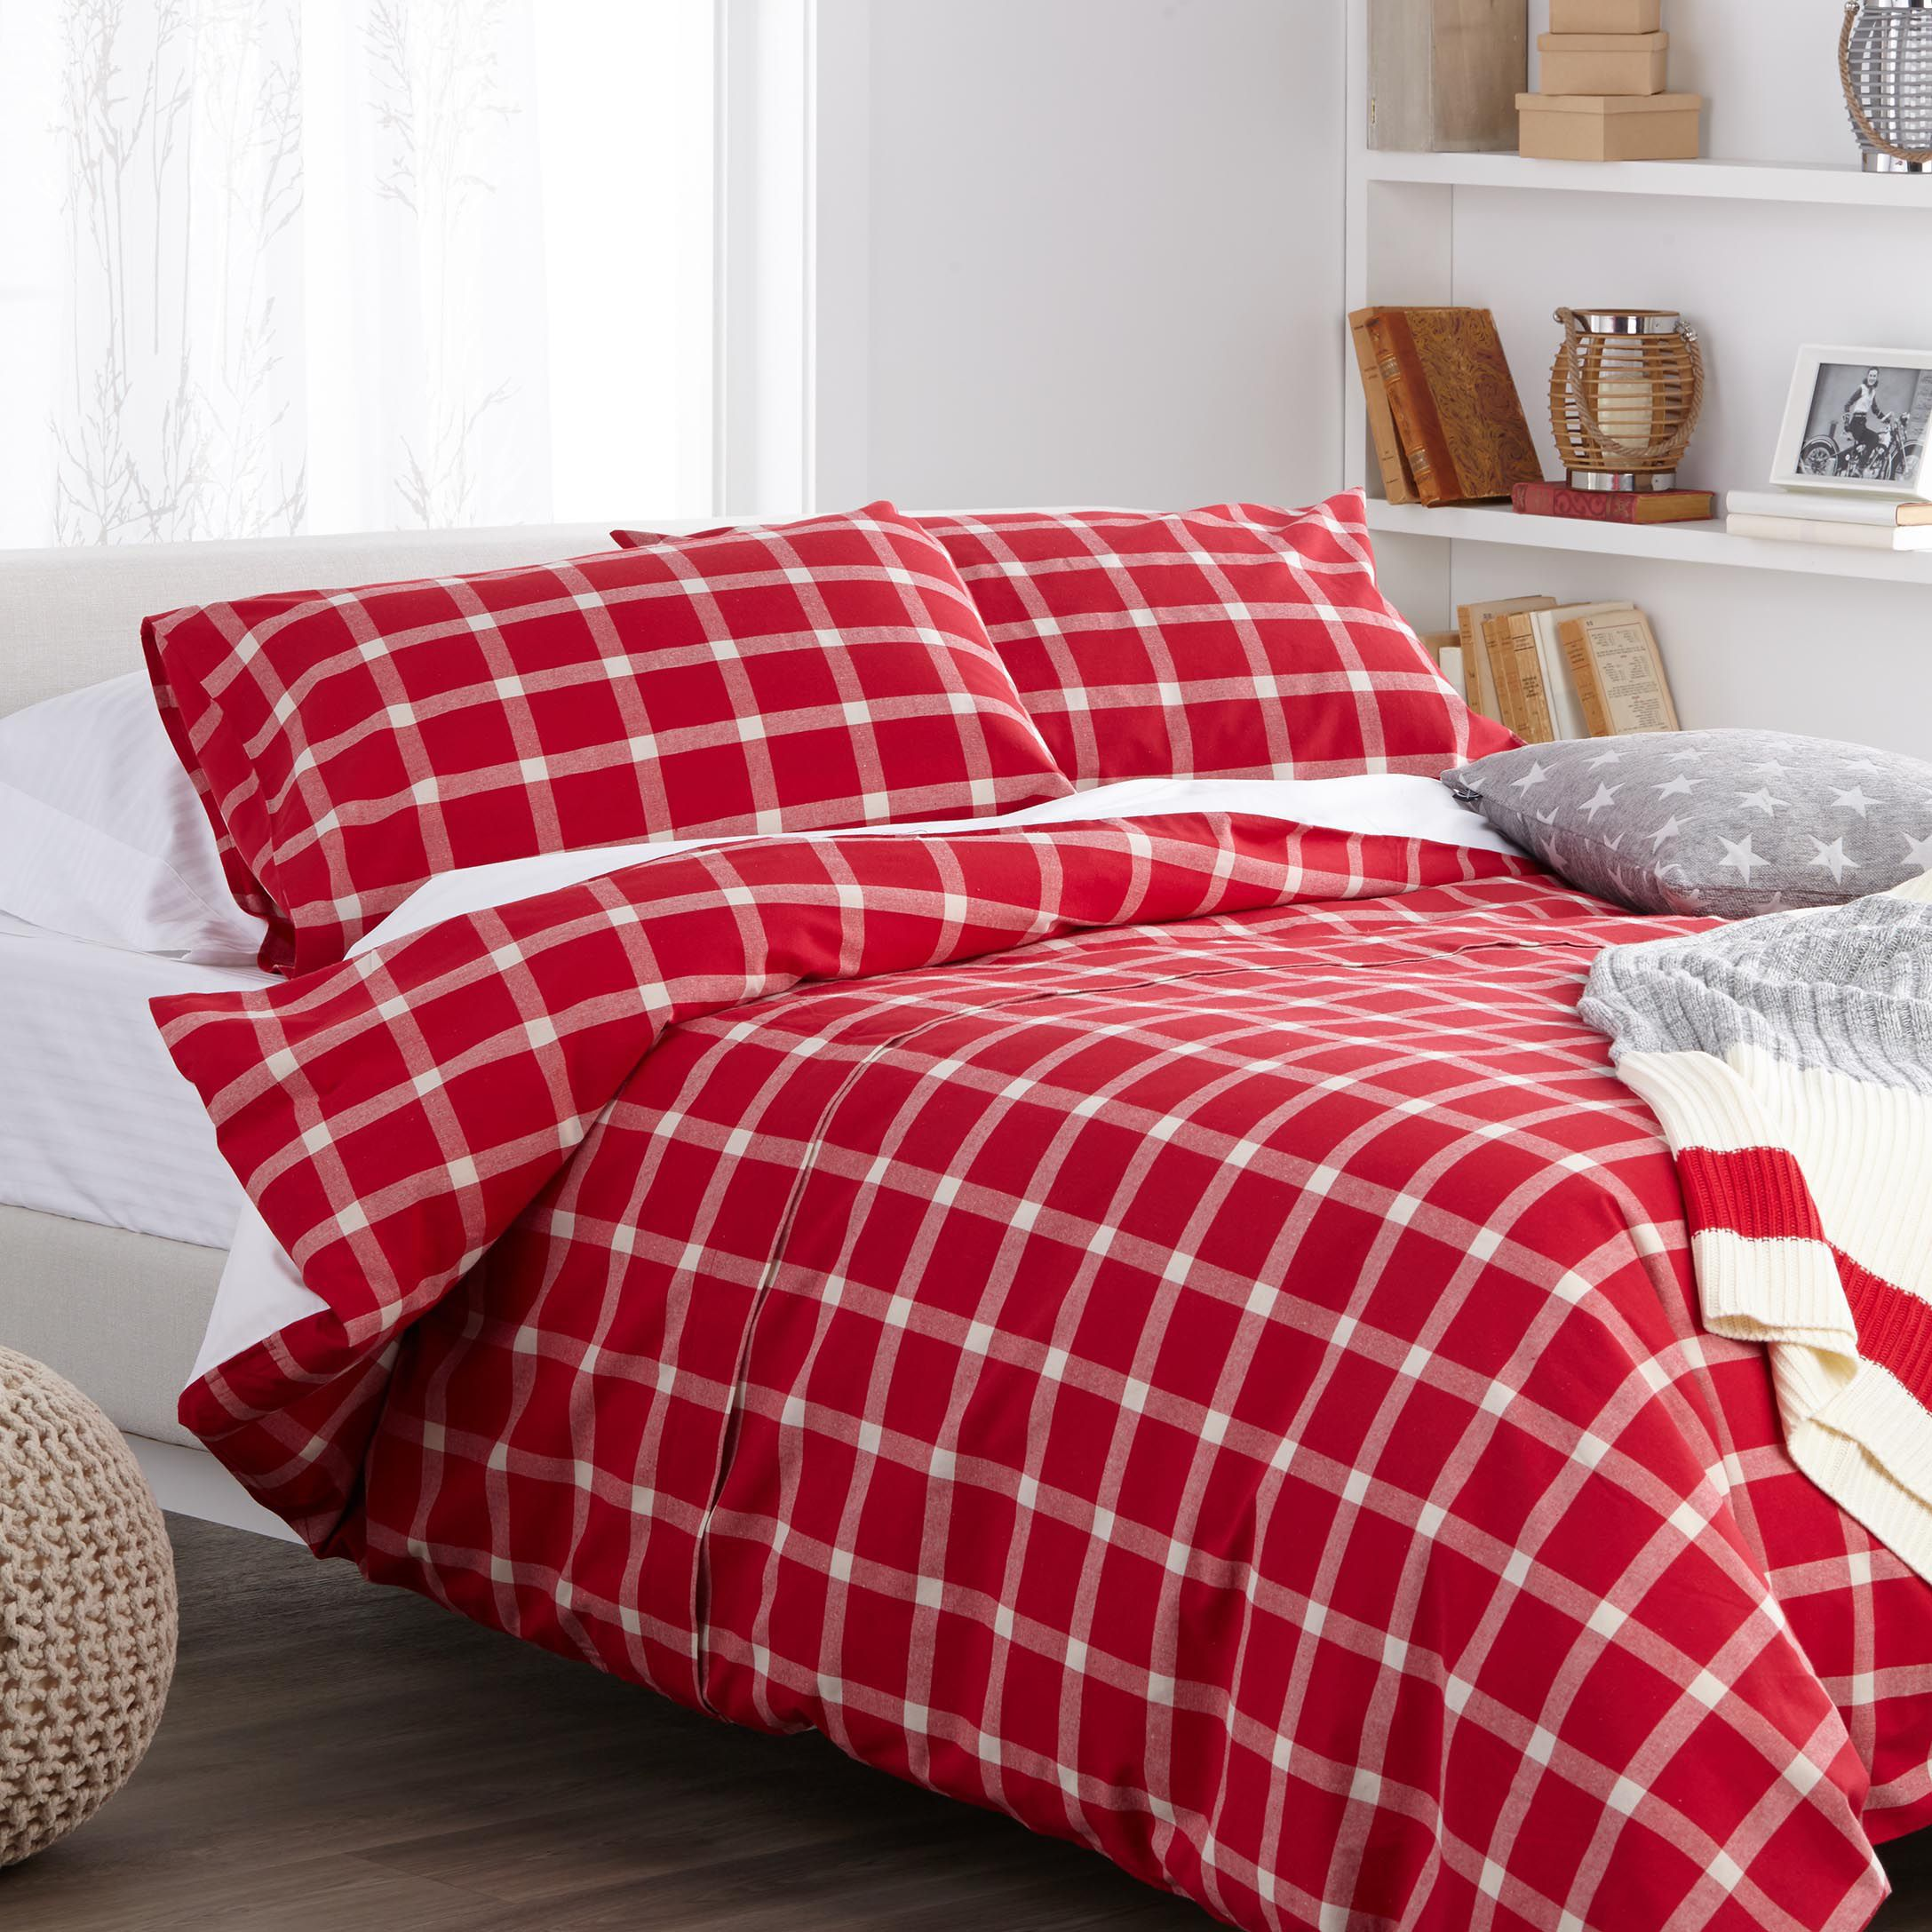 cover pin set king duvet bauer edgewood ease plaid bedding red eddie